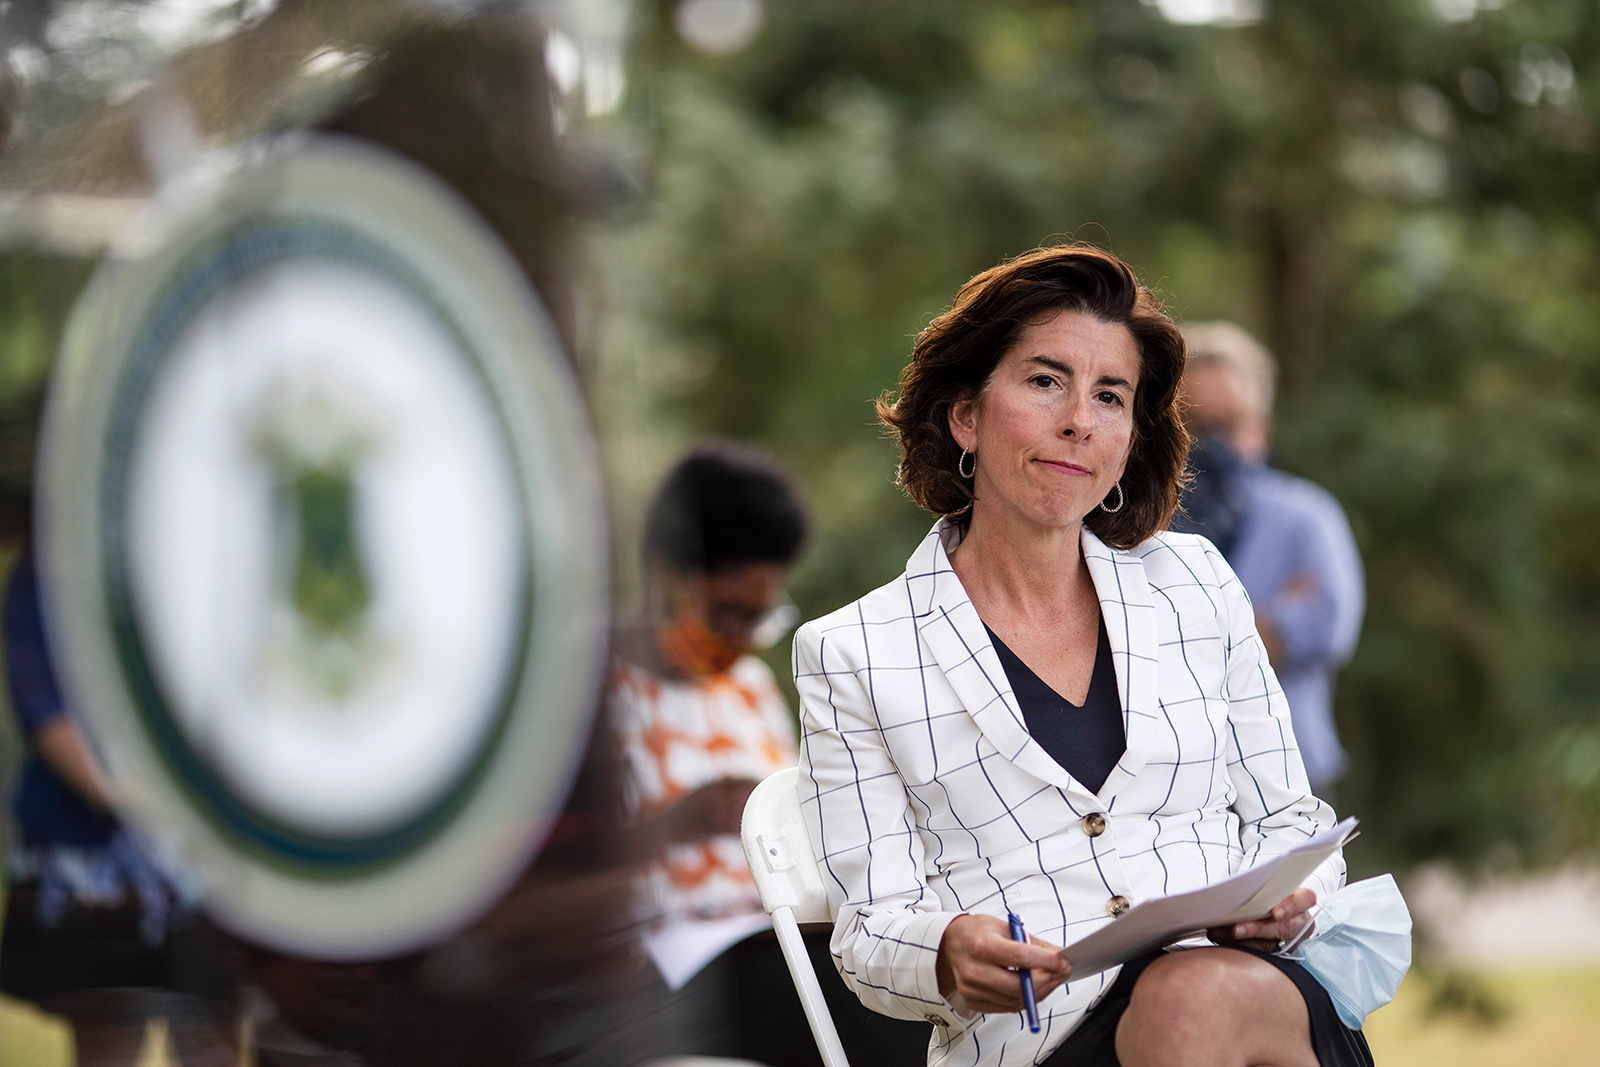 Rhode Island Gov. Gina Raimondo sits during a news conference Monday, June 22, in Providence.